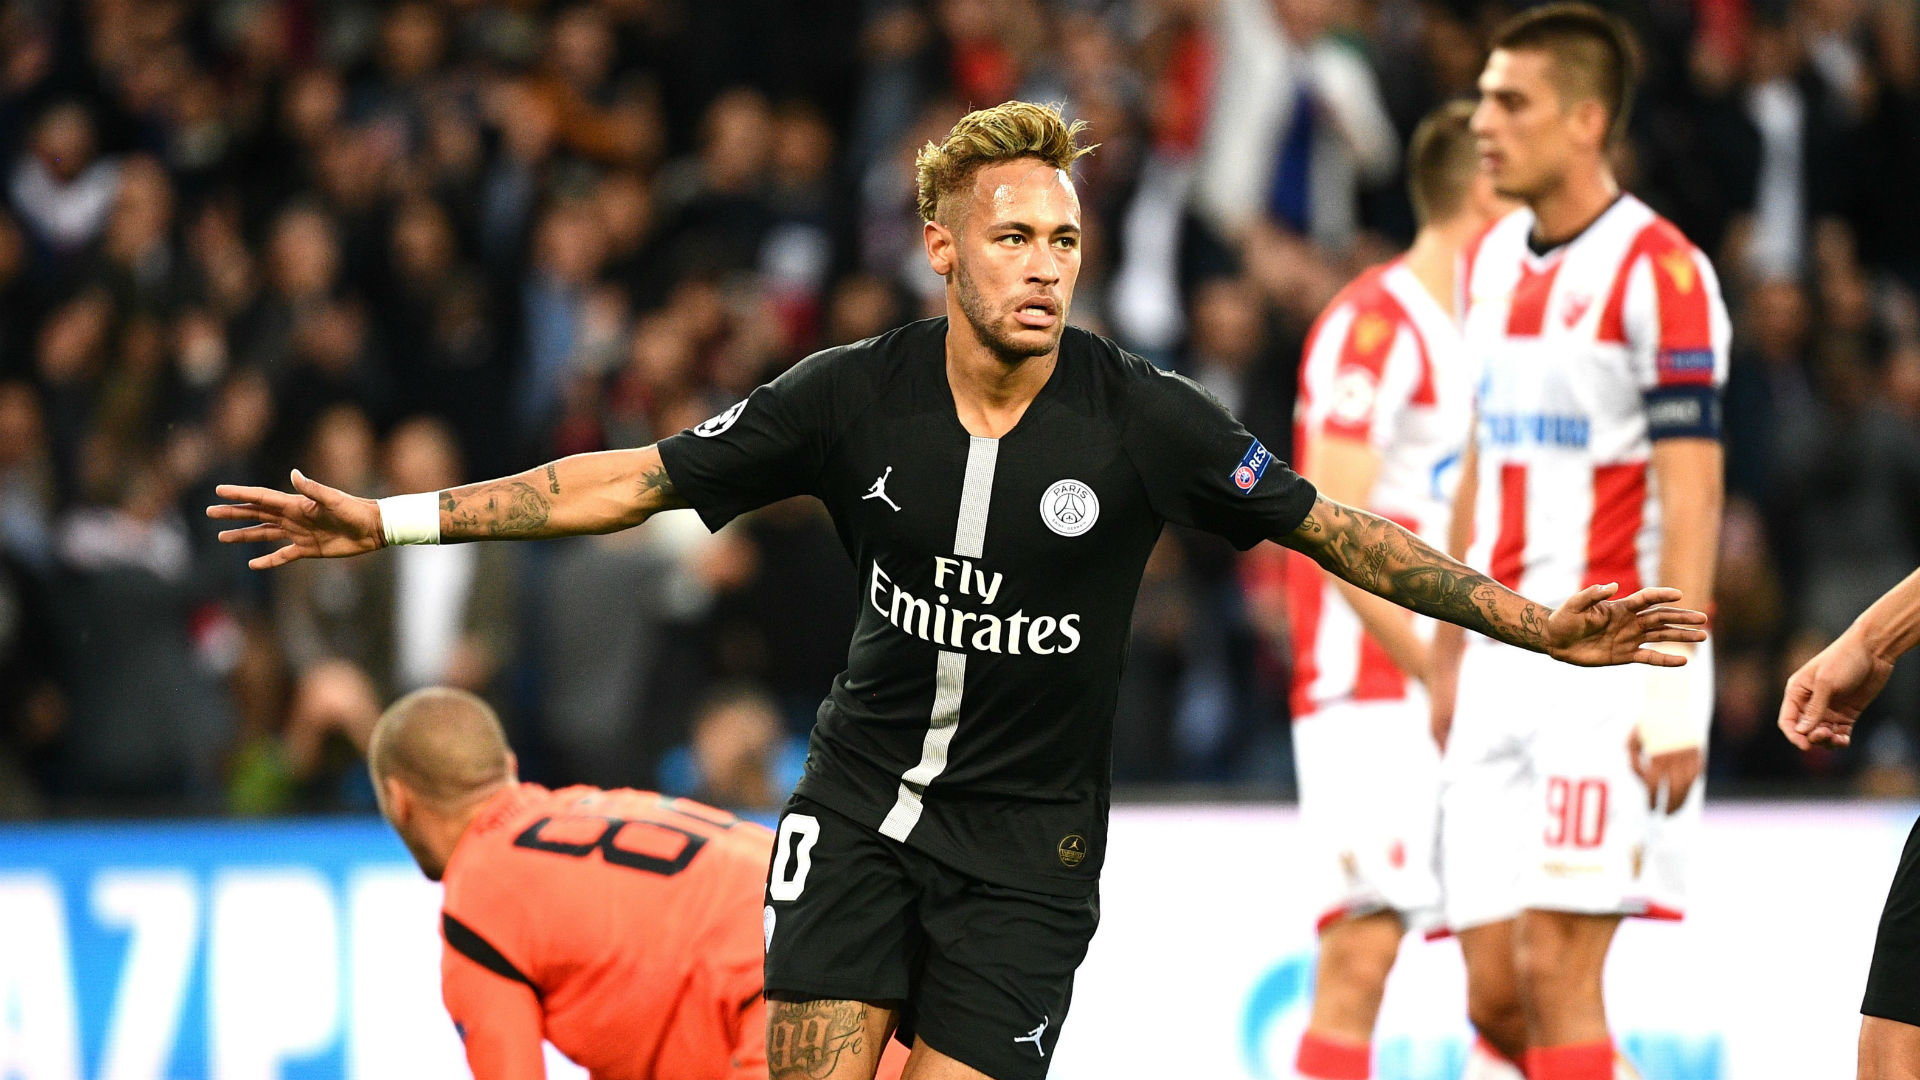 PSG's 6-1 Champions League victory investigated for match-fixing